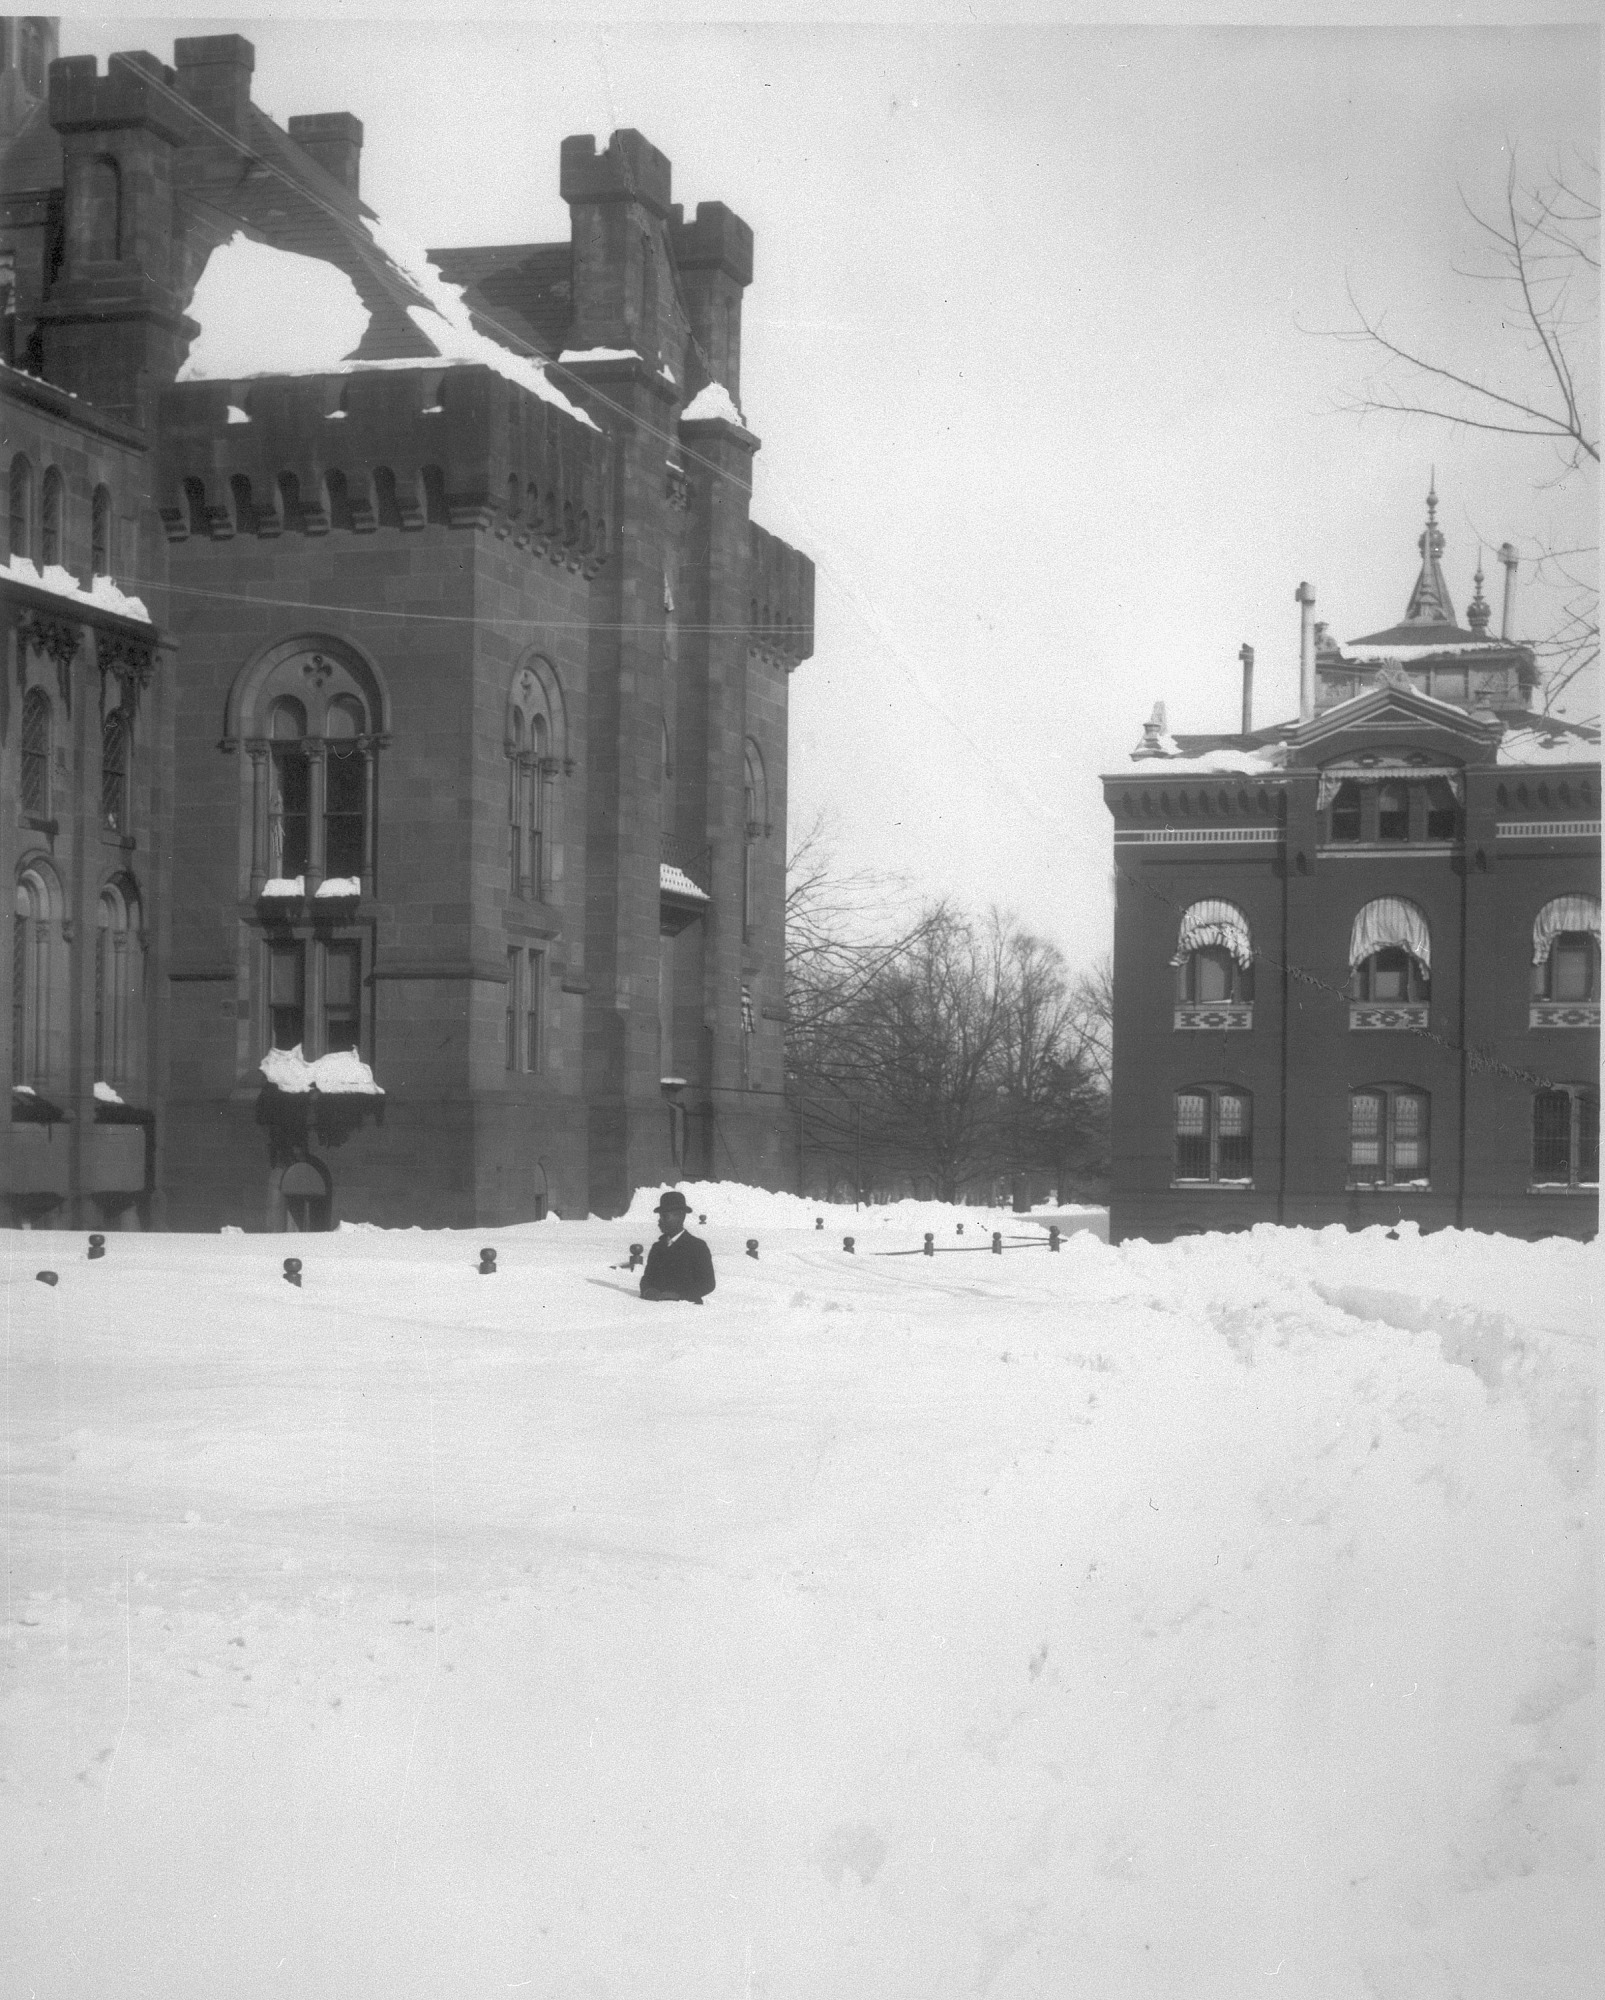 Knickerbocker Snowstorm Hits Washington, D.C, January 29, 1922, Smithsonian Archives - History Div.